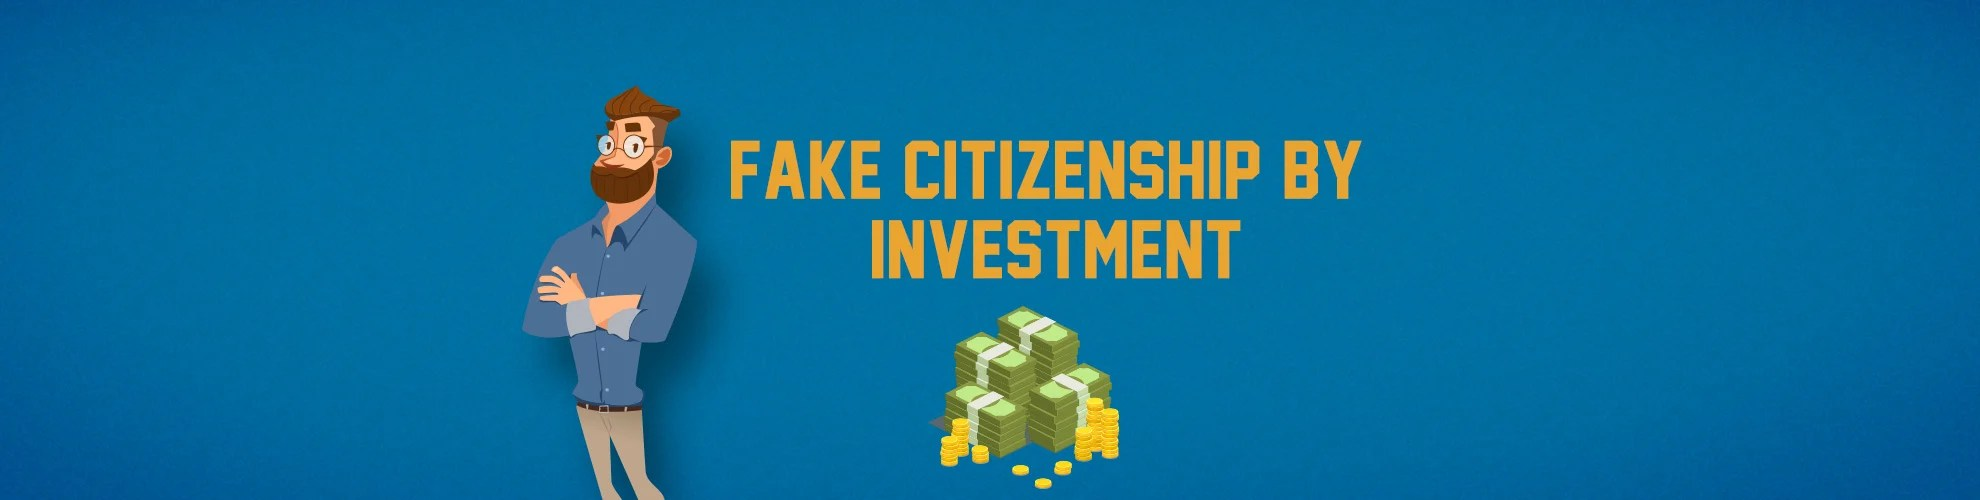 Fake Citizenship By Investment